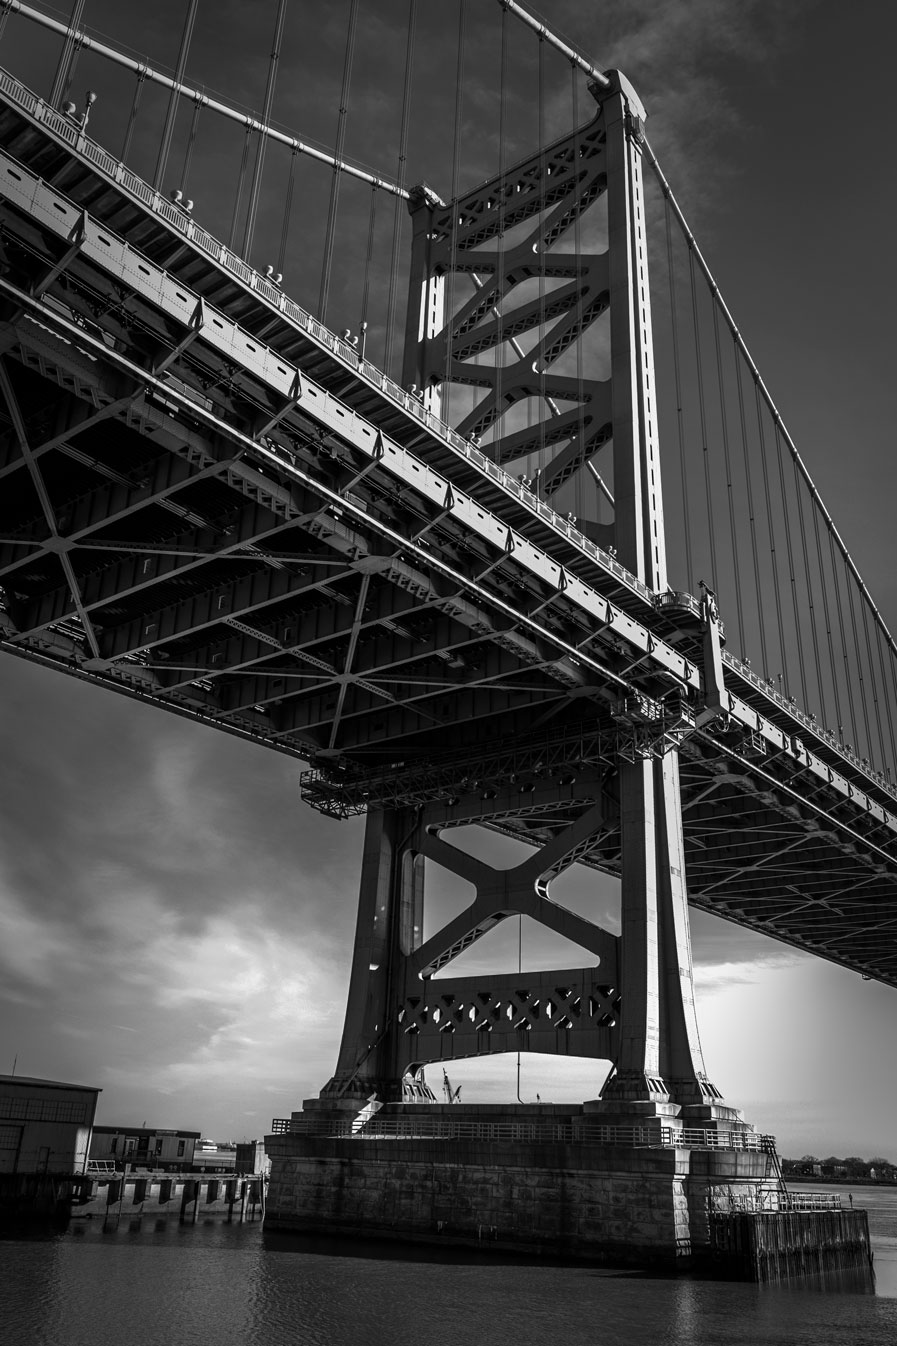 Ben Franklin Bridge, Philadelphia PA